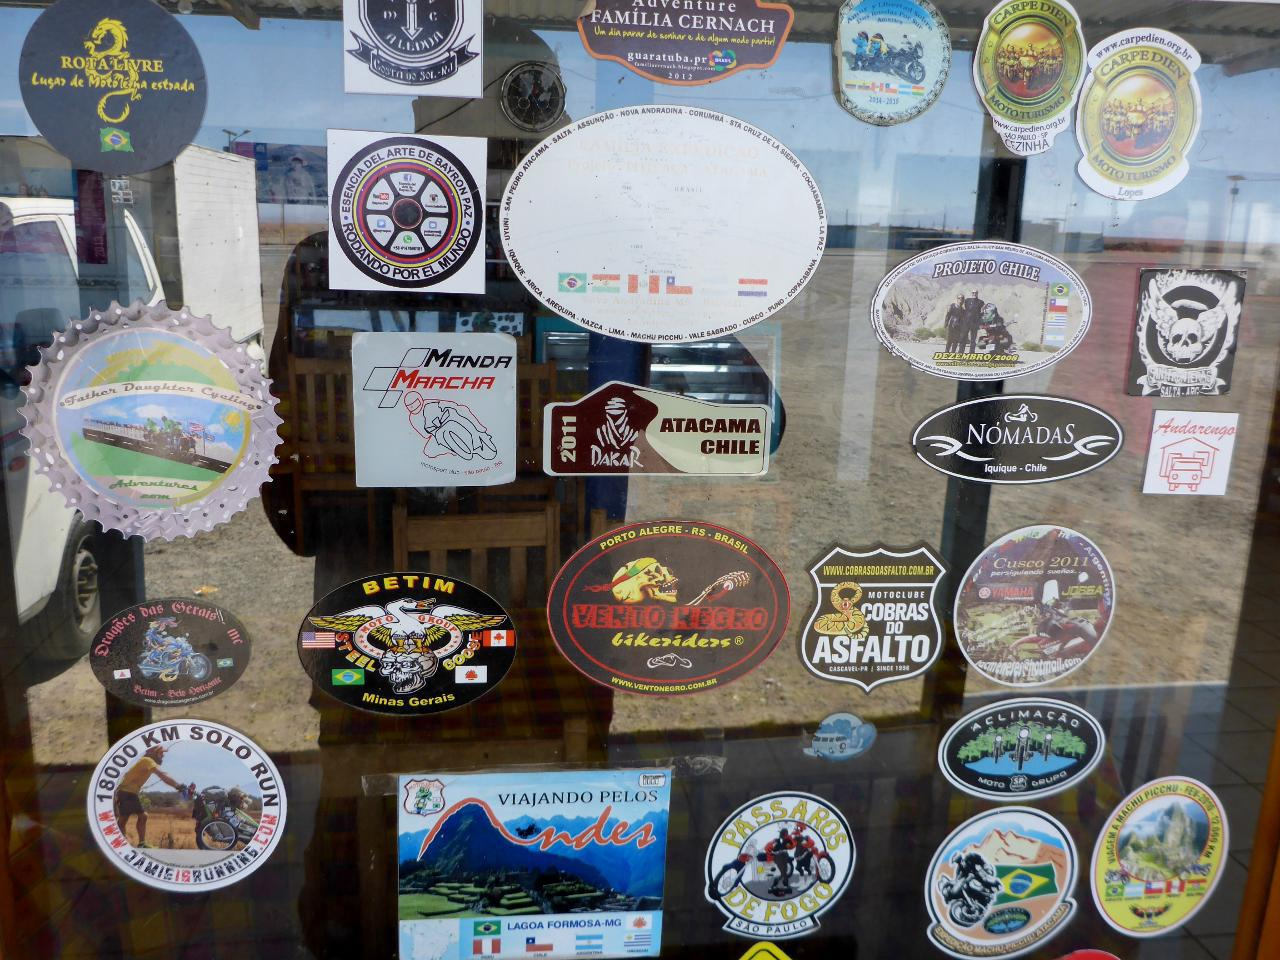 Since Mexico we have stopped in many desert restaurants, of which we have added our fatherdaughtercyclingadventures sticker - middle left.